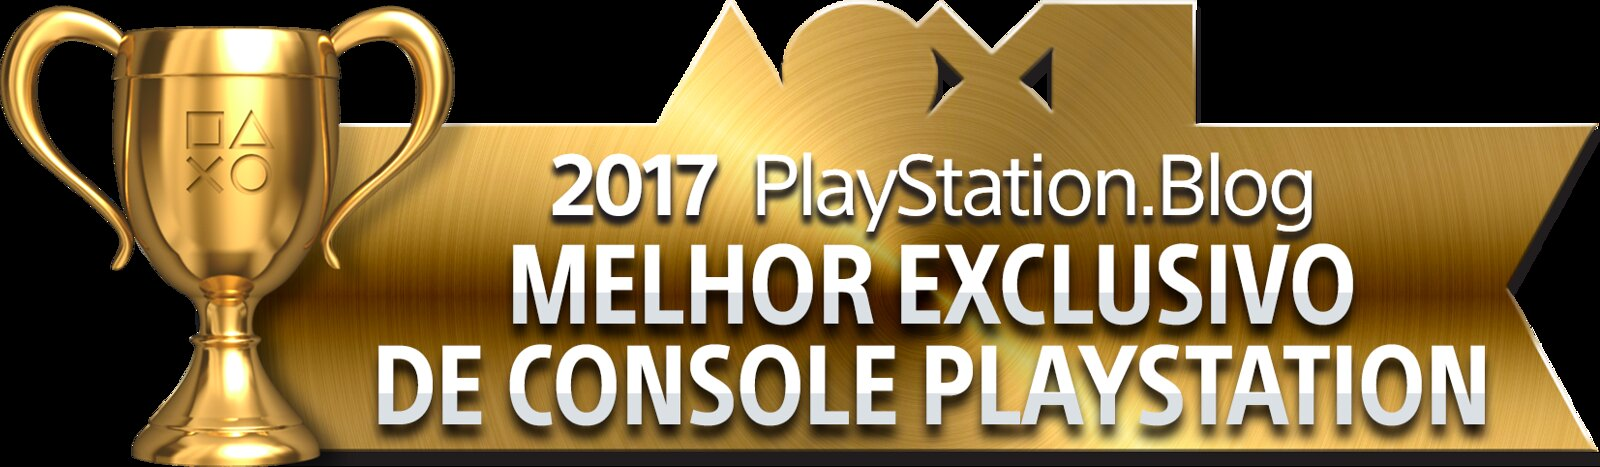 PlayStation Blog Game of the Year 2017 - Best PlayStation Console Exclusive (Gold)